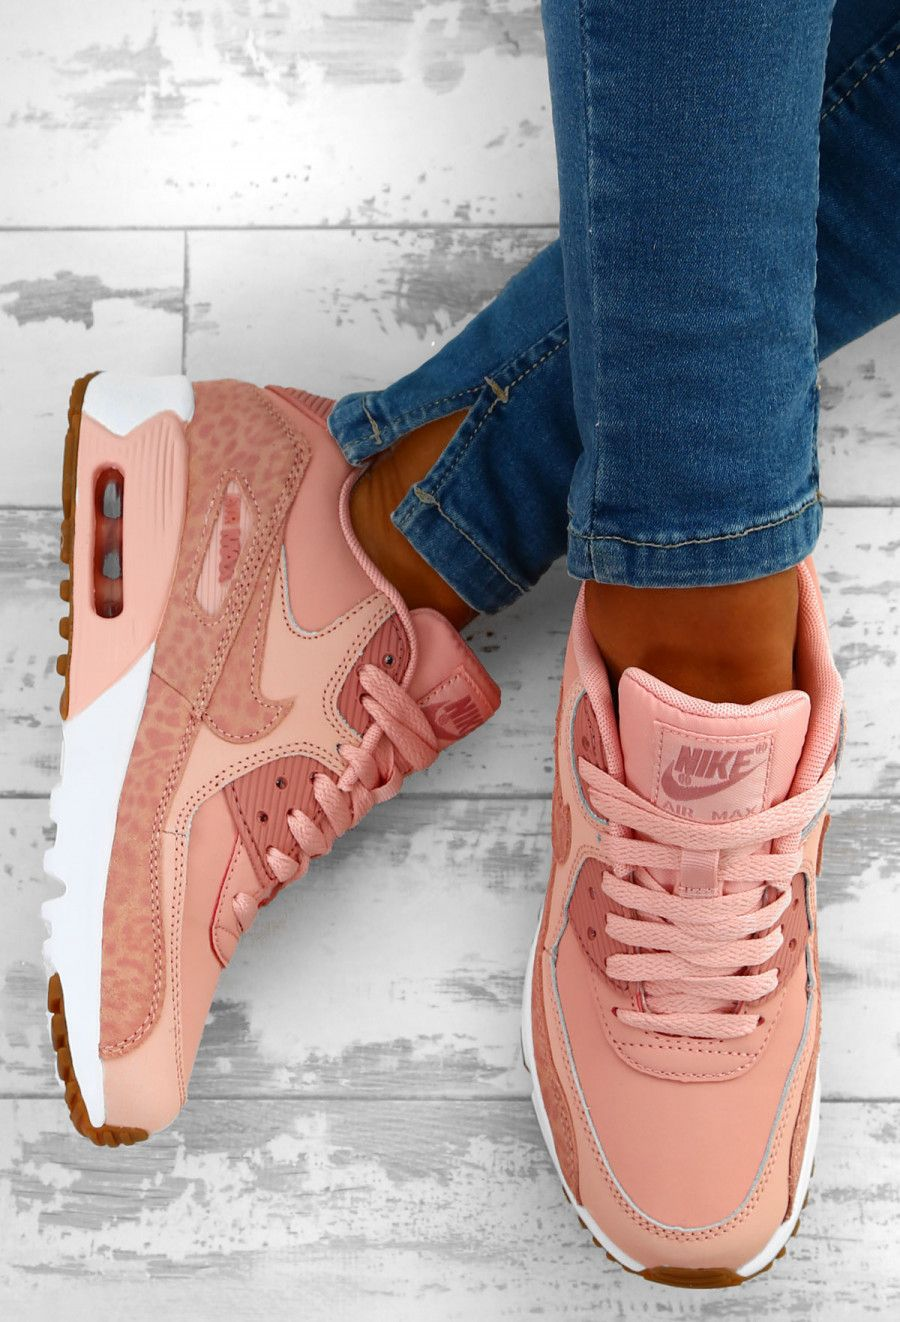 ab065062937a01 Nike Air Max 90 Pink Leopard Trainers - UK 3